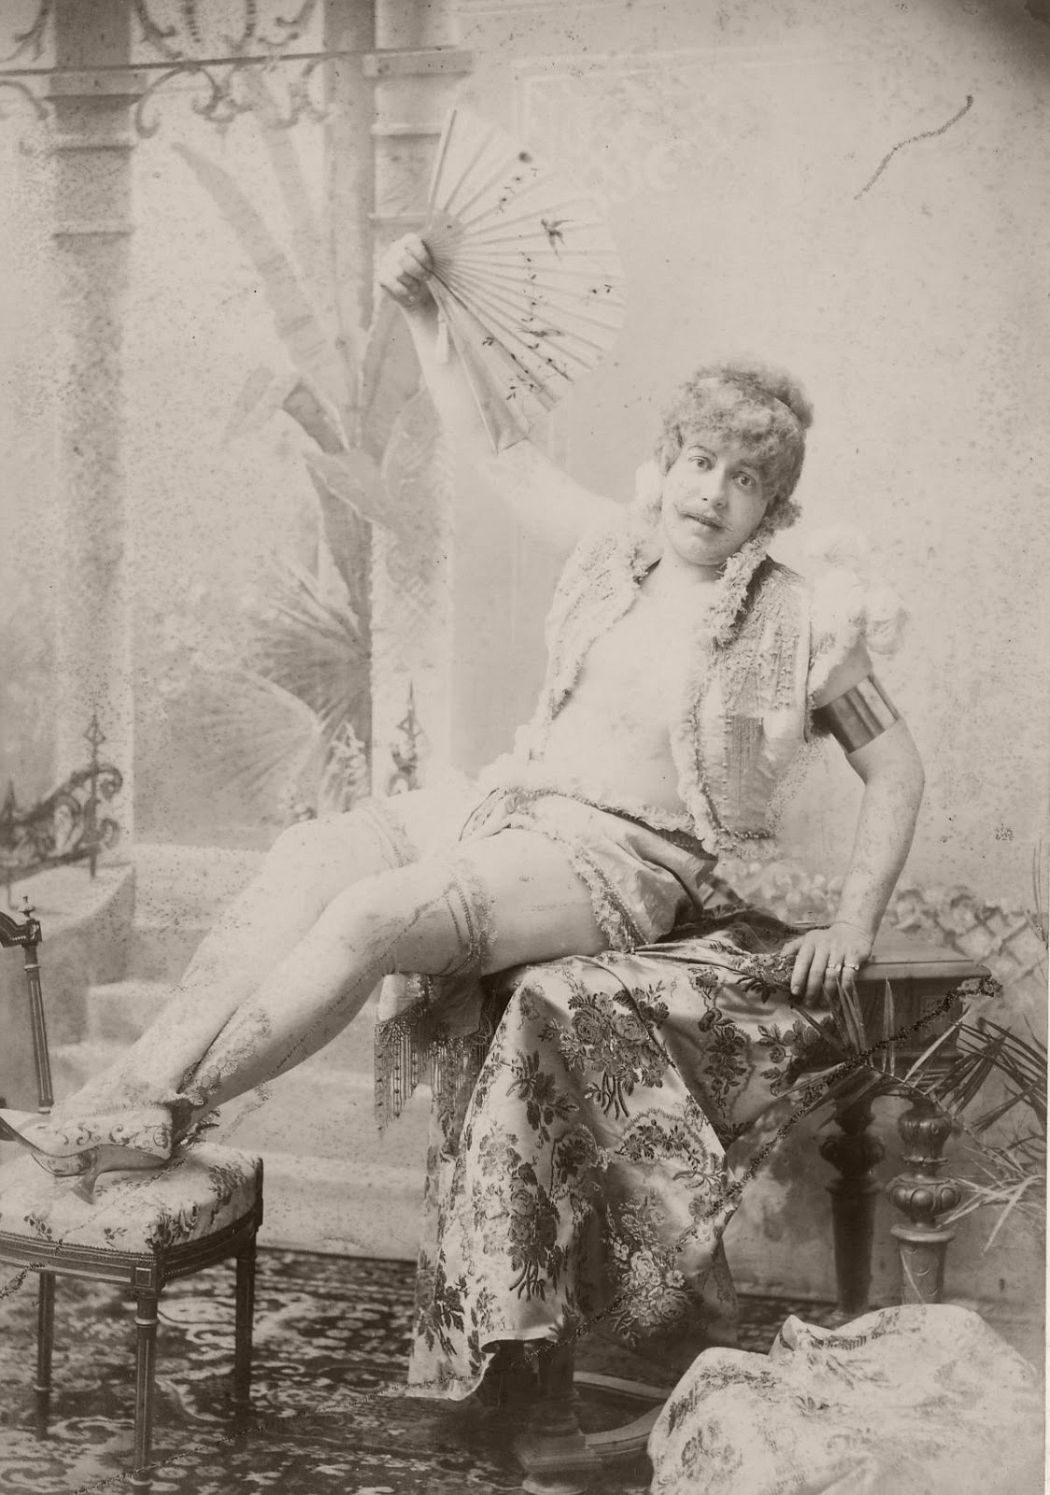 Man seated, wearing ladies shoes and stockings, ruffle or lace edged open top (bare chested) and shorts or skirt, holding up an open fan. He is seated on a table with his feet resting on a stool.